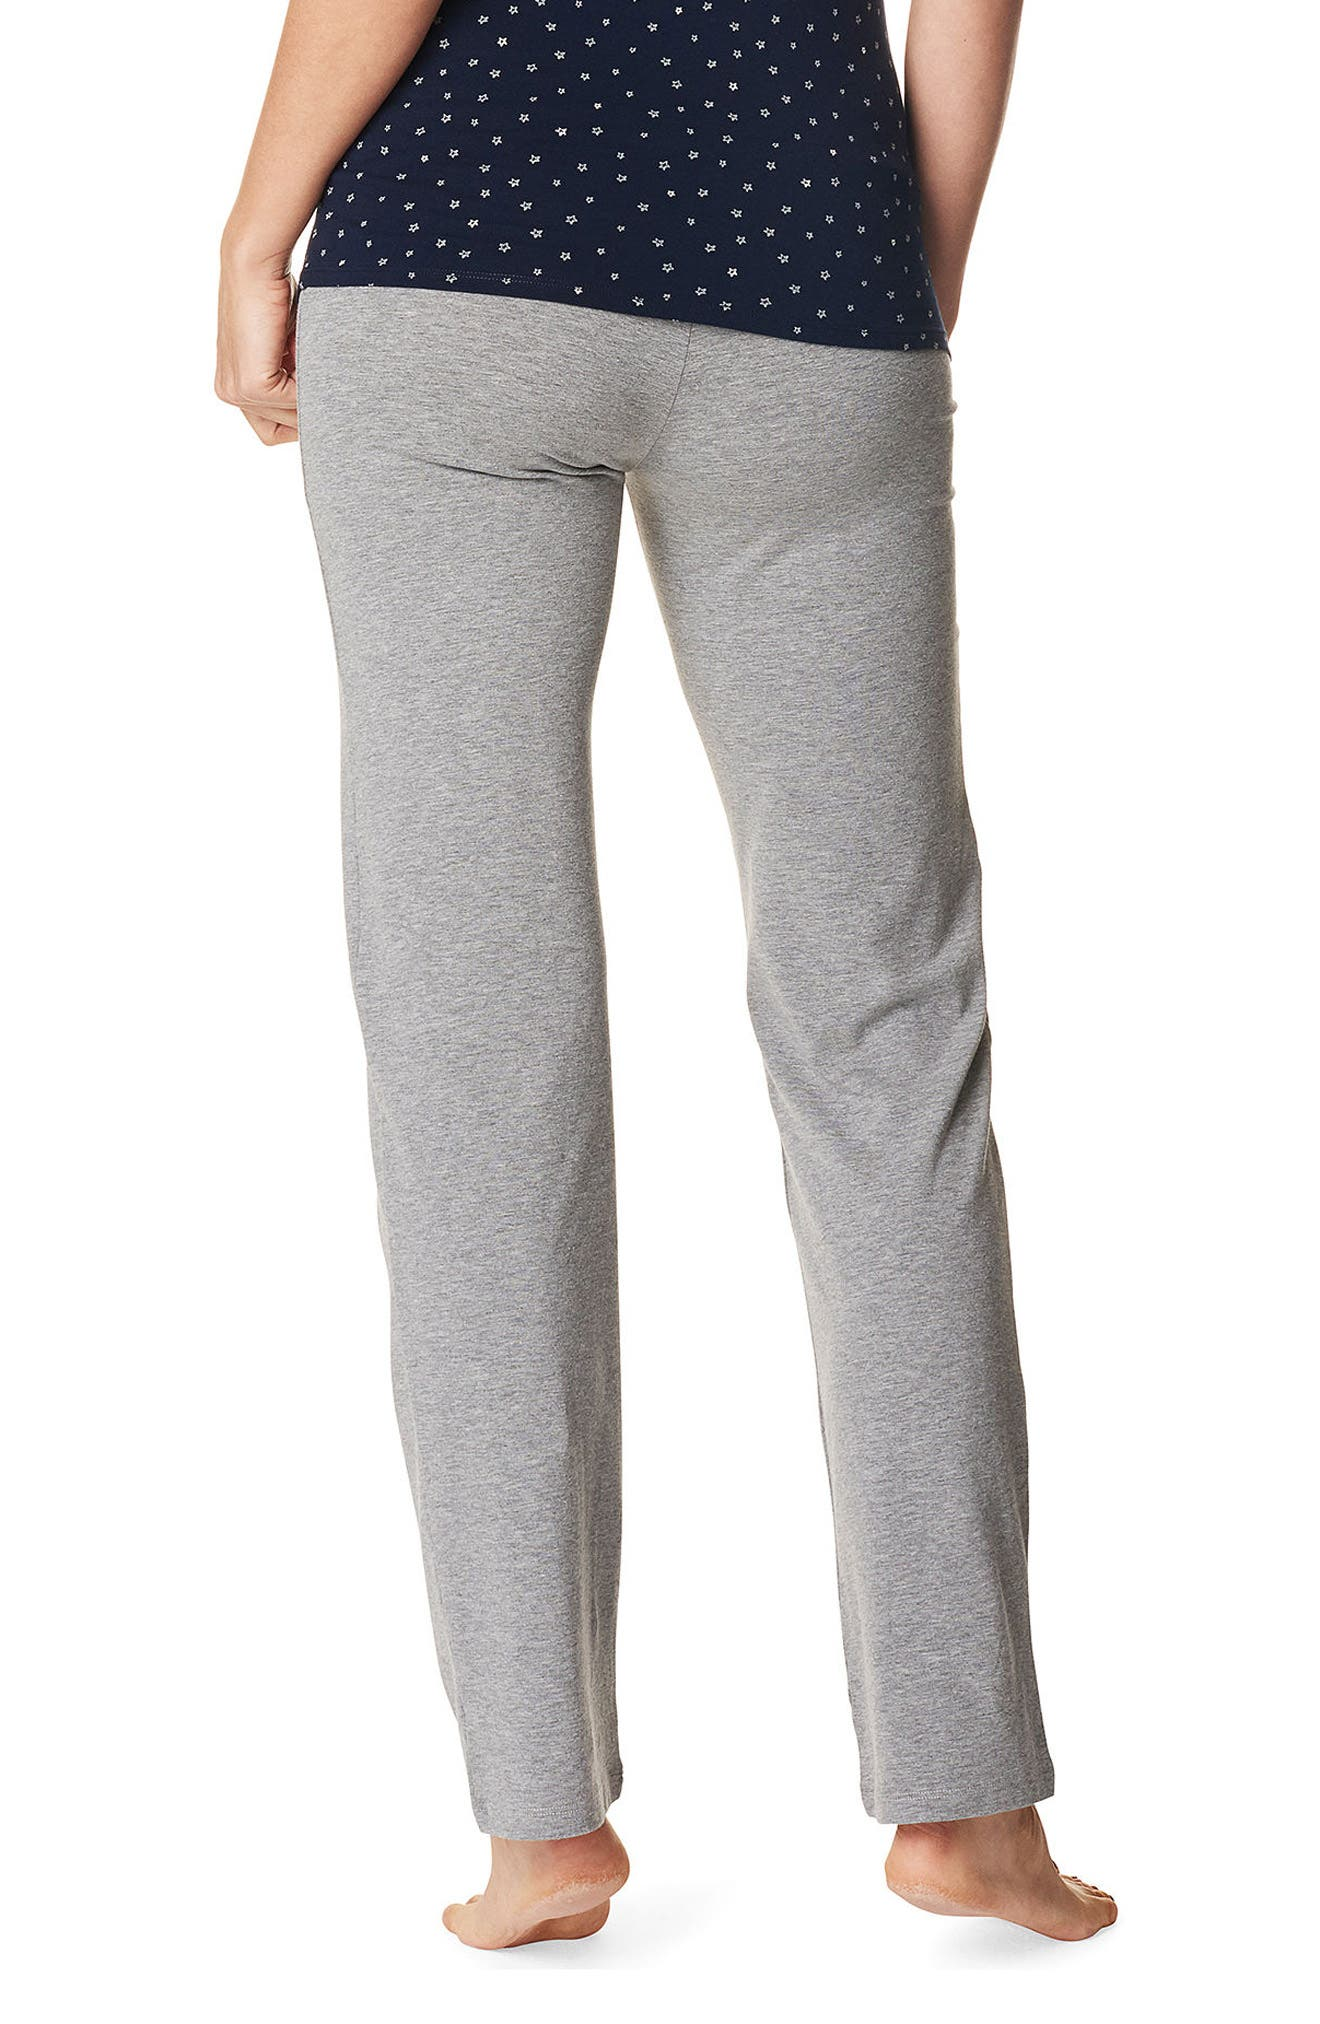 Mette Maternity Pants,                             Alternate thumbnail 2, color,                             GREY